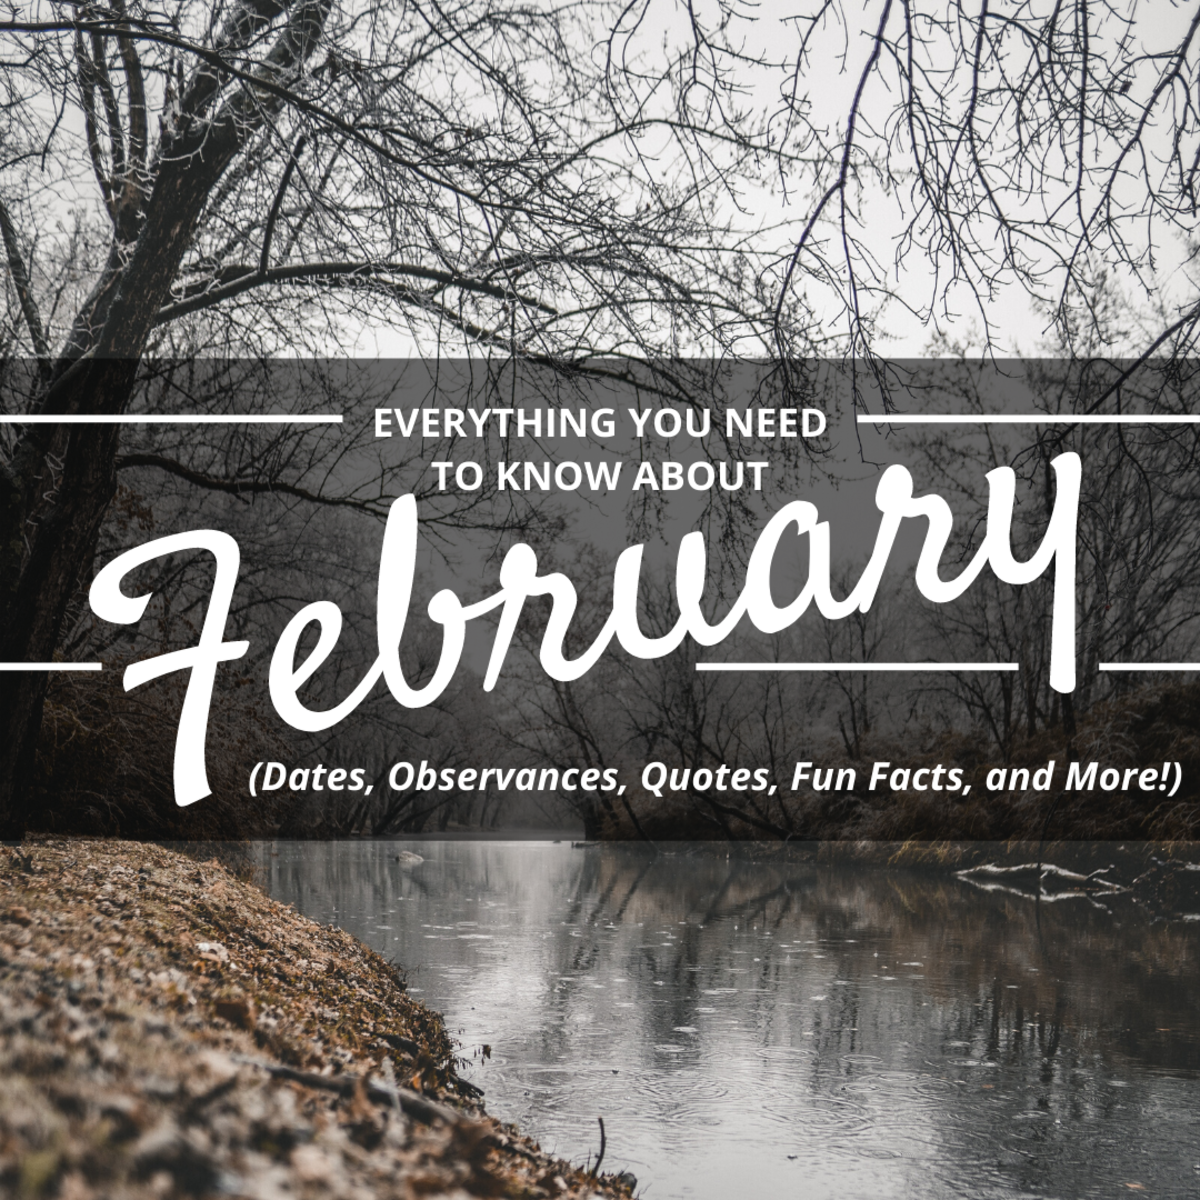 Most of us know that February is the shortest month of the year, but what else is there to it? Find out here.